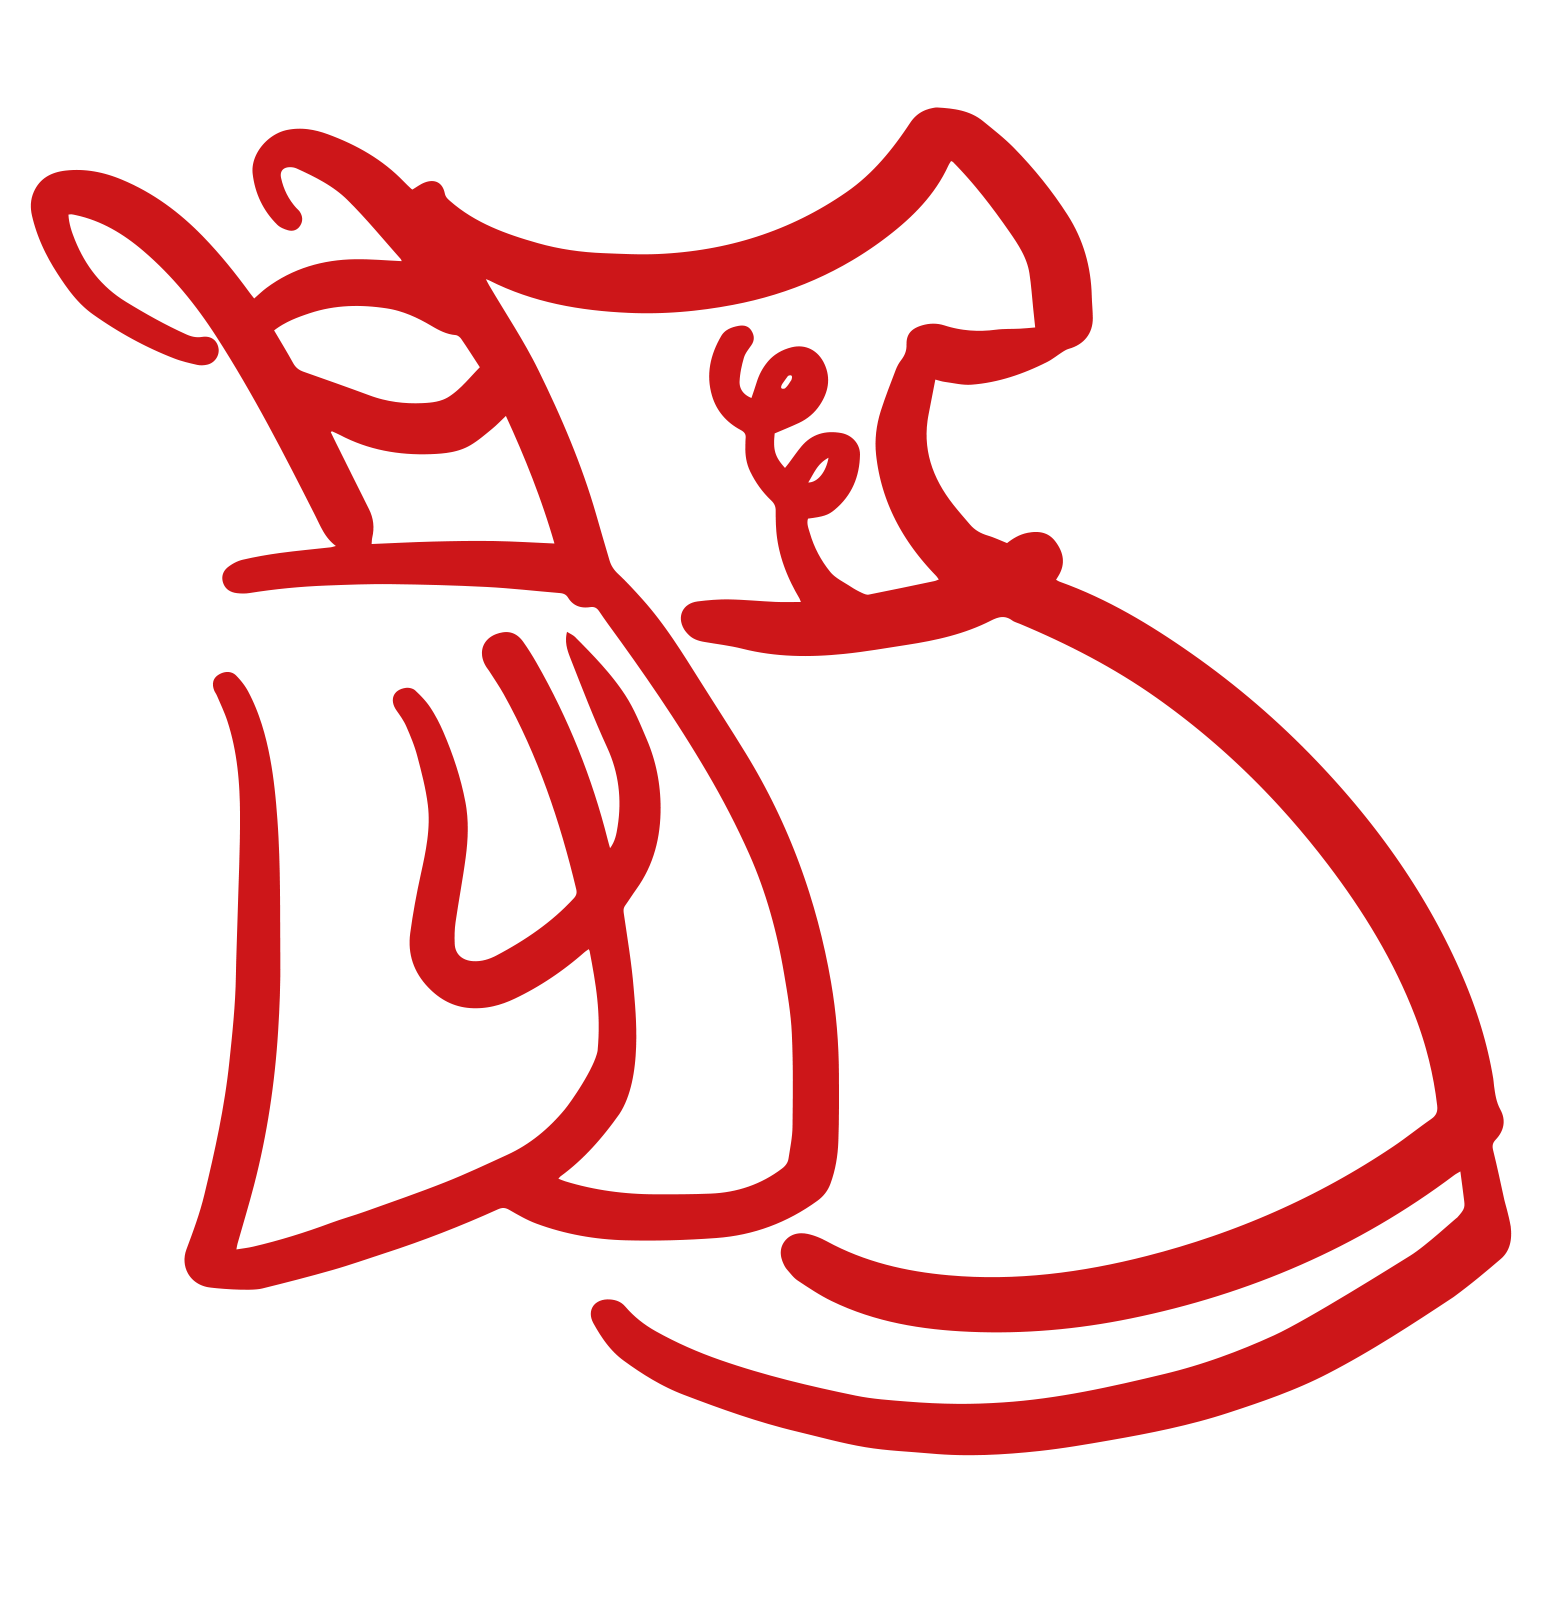 Dirndl Strickjacke in anthrazit mit grünem Stickmuster